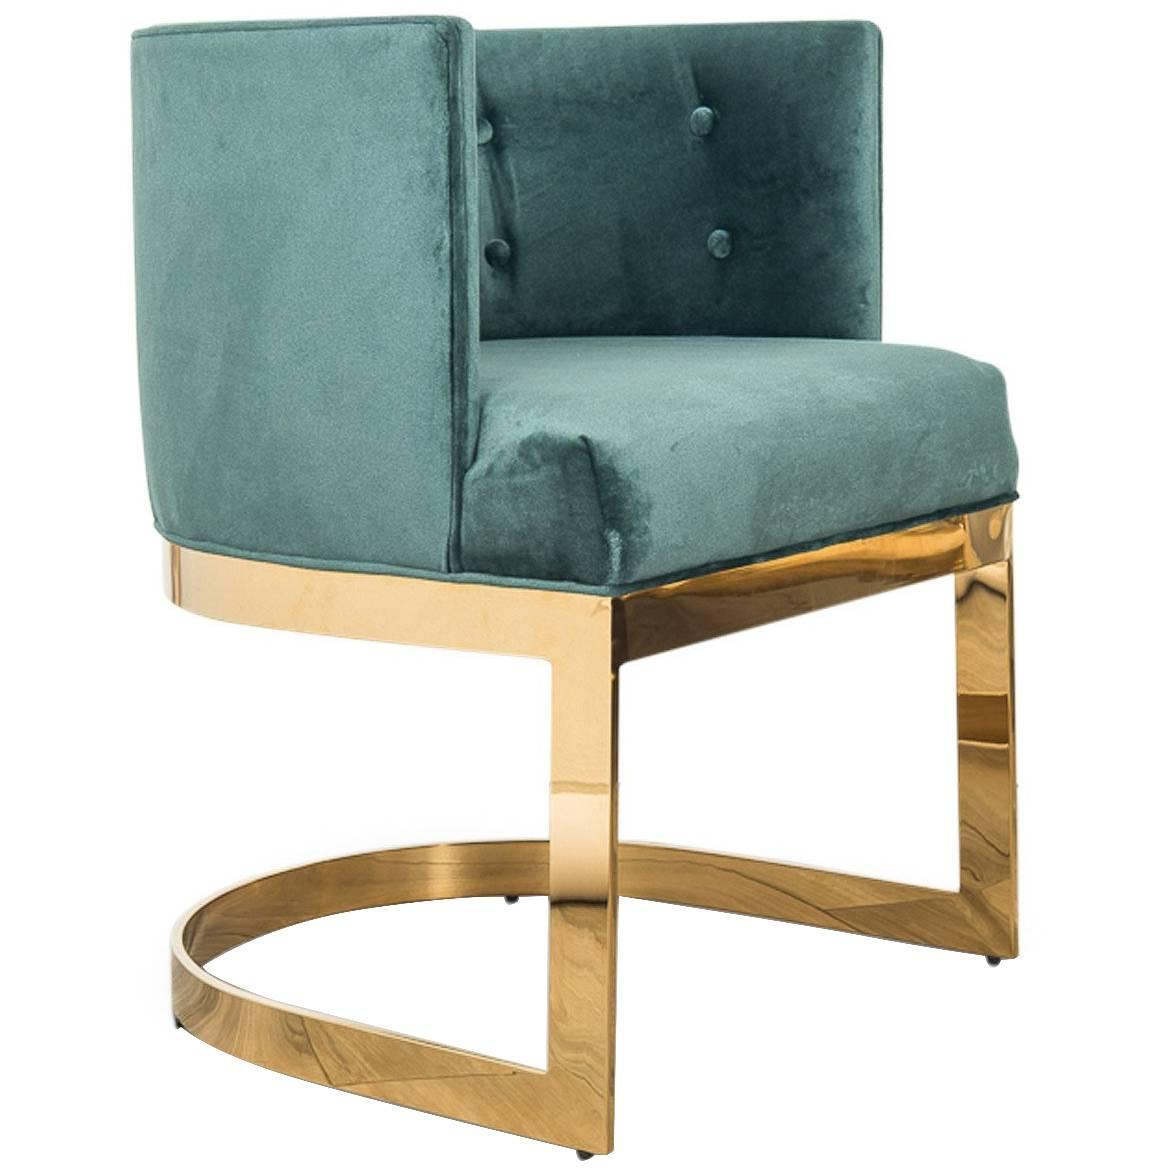 Art deco style ibiza dining chair in hunter green velvet w curved brass frame for sale at 1stdibs